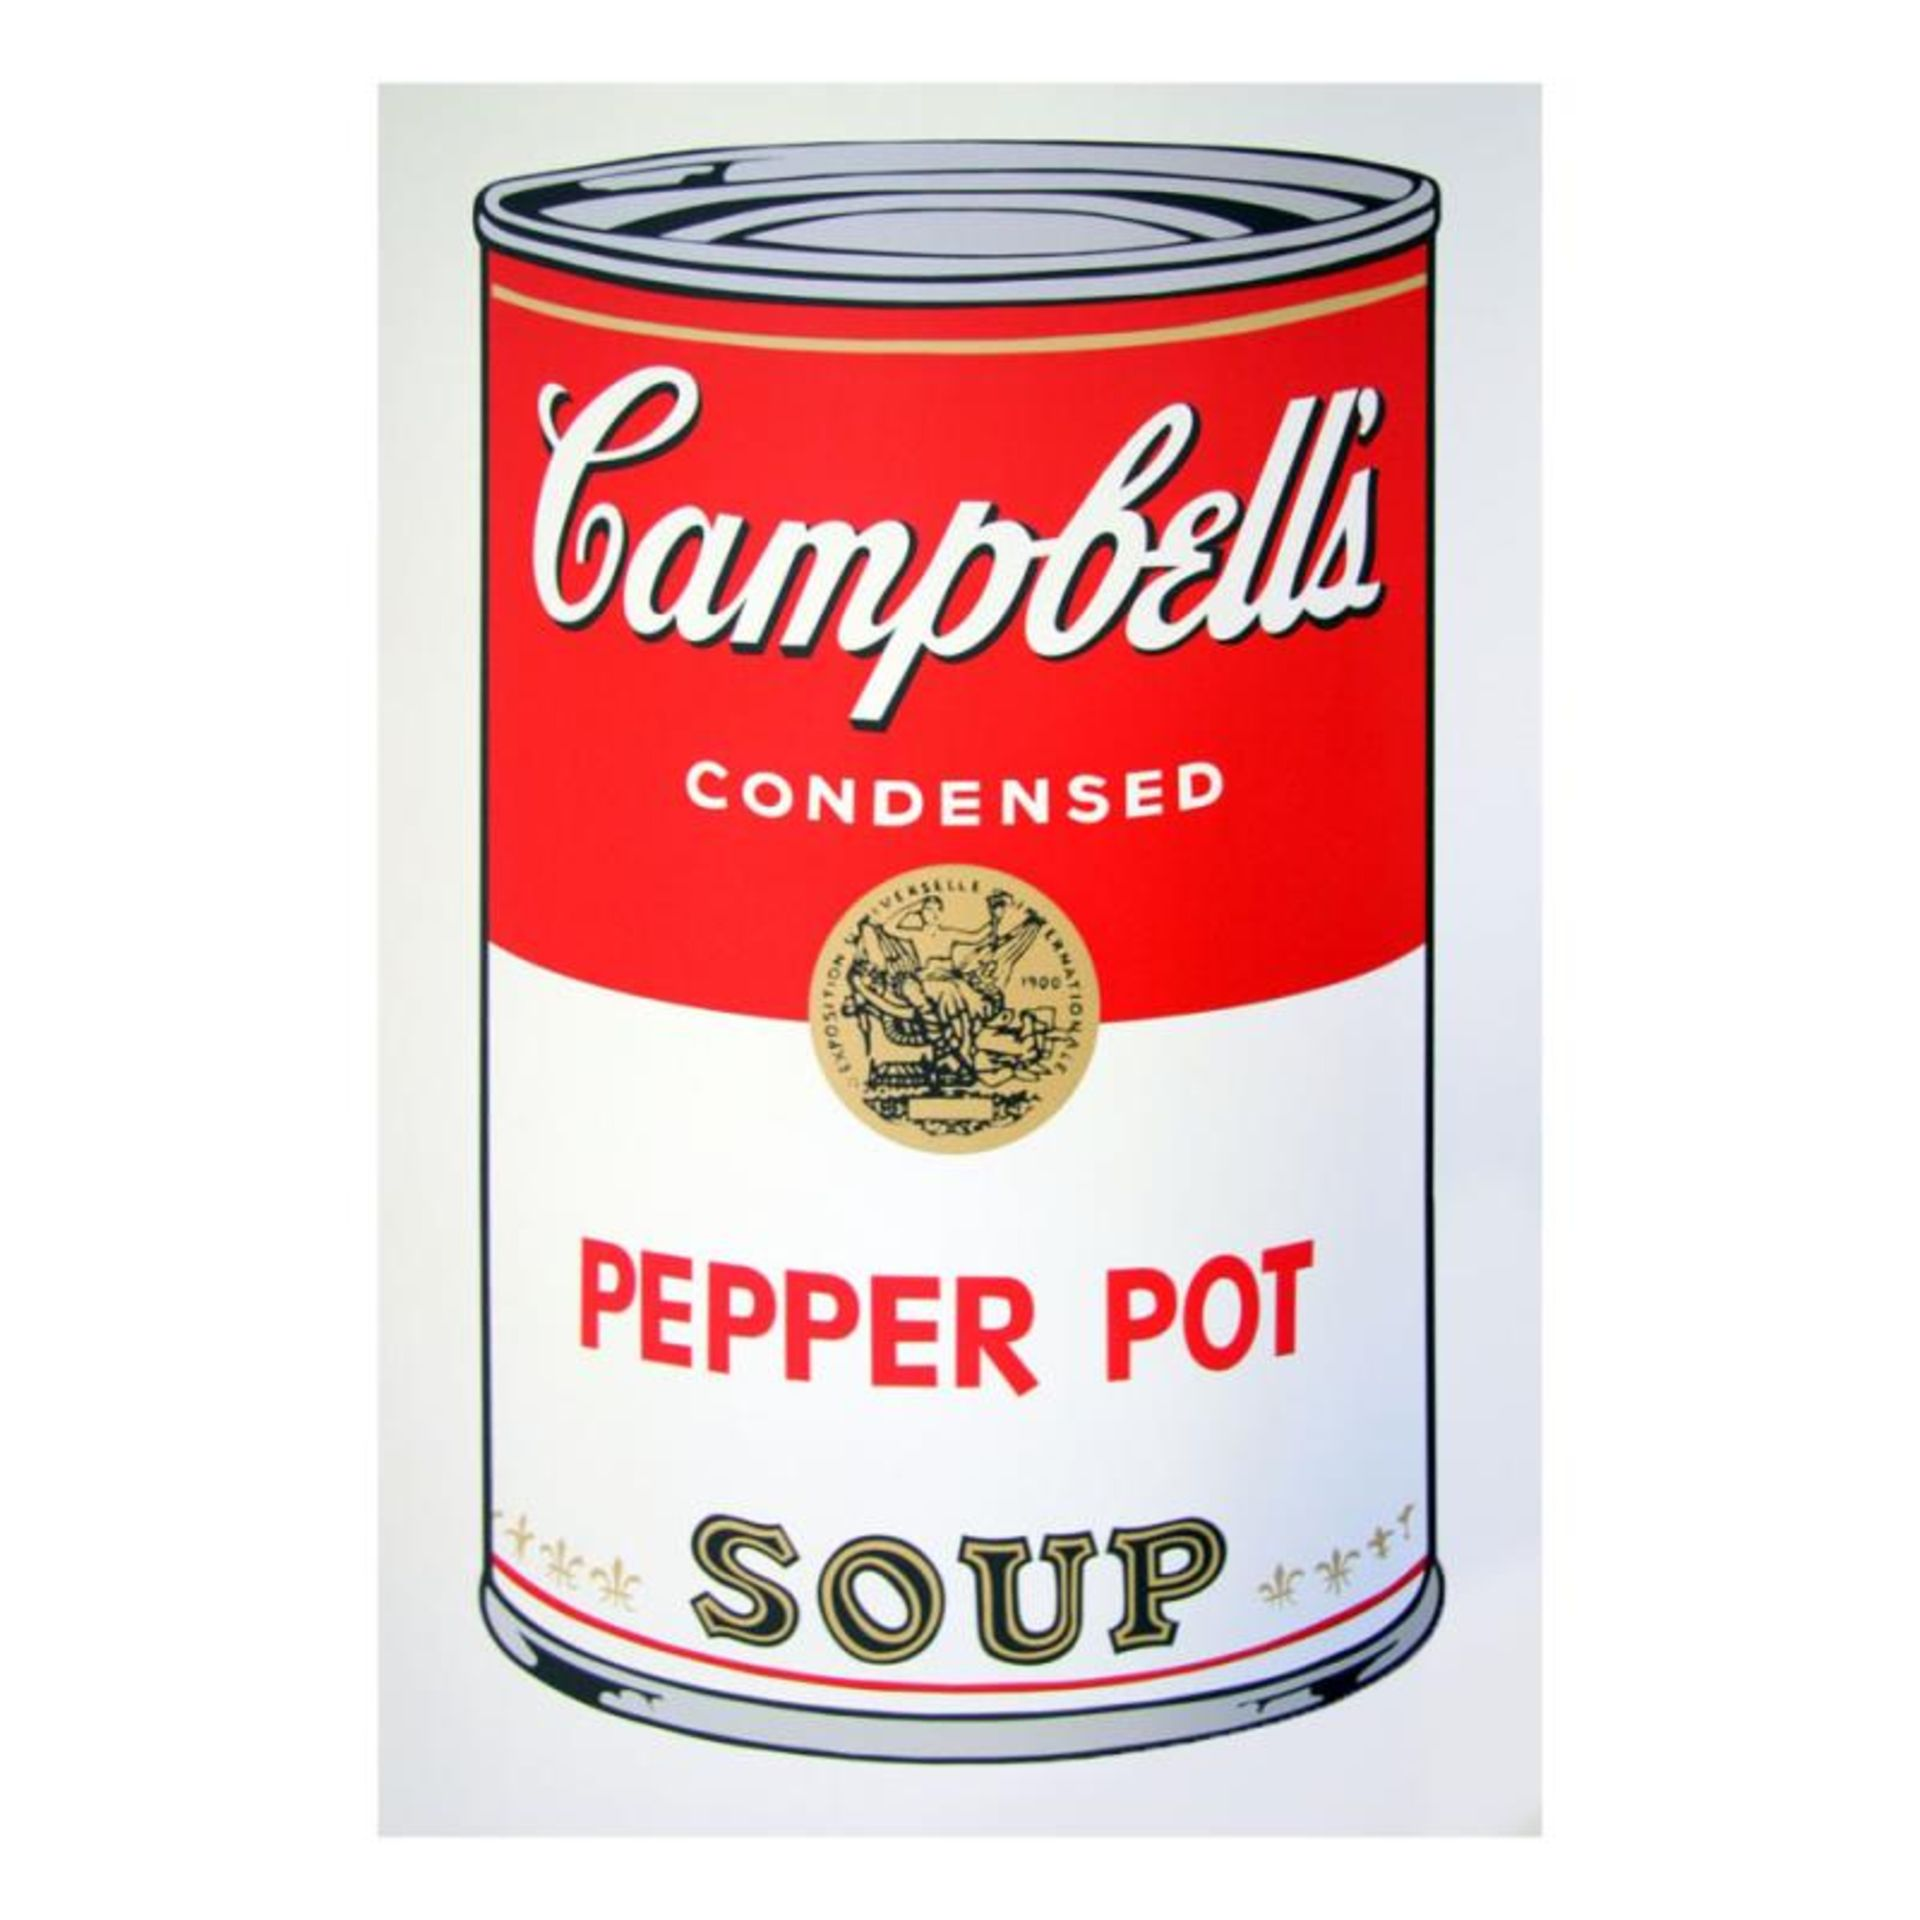 Soup Can 11.51 (Pepper Pot) by Warhol, Andy